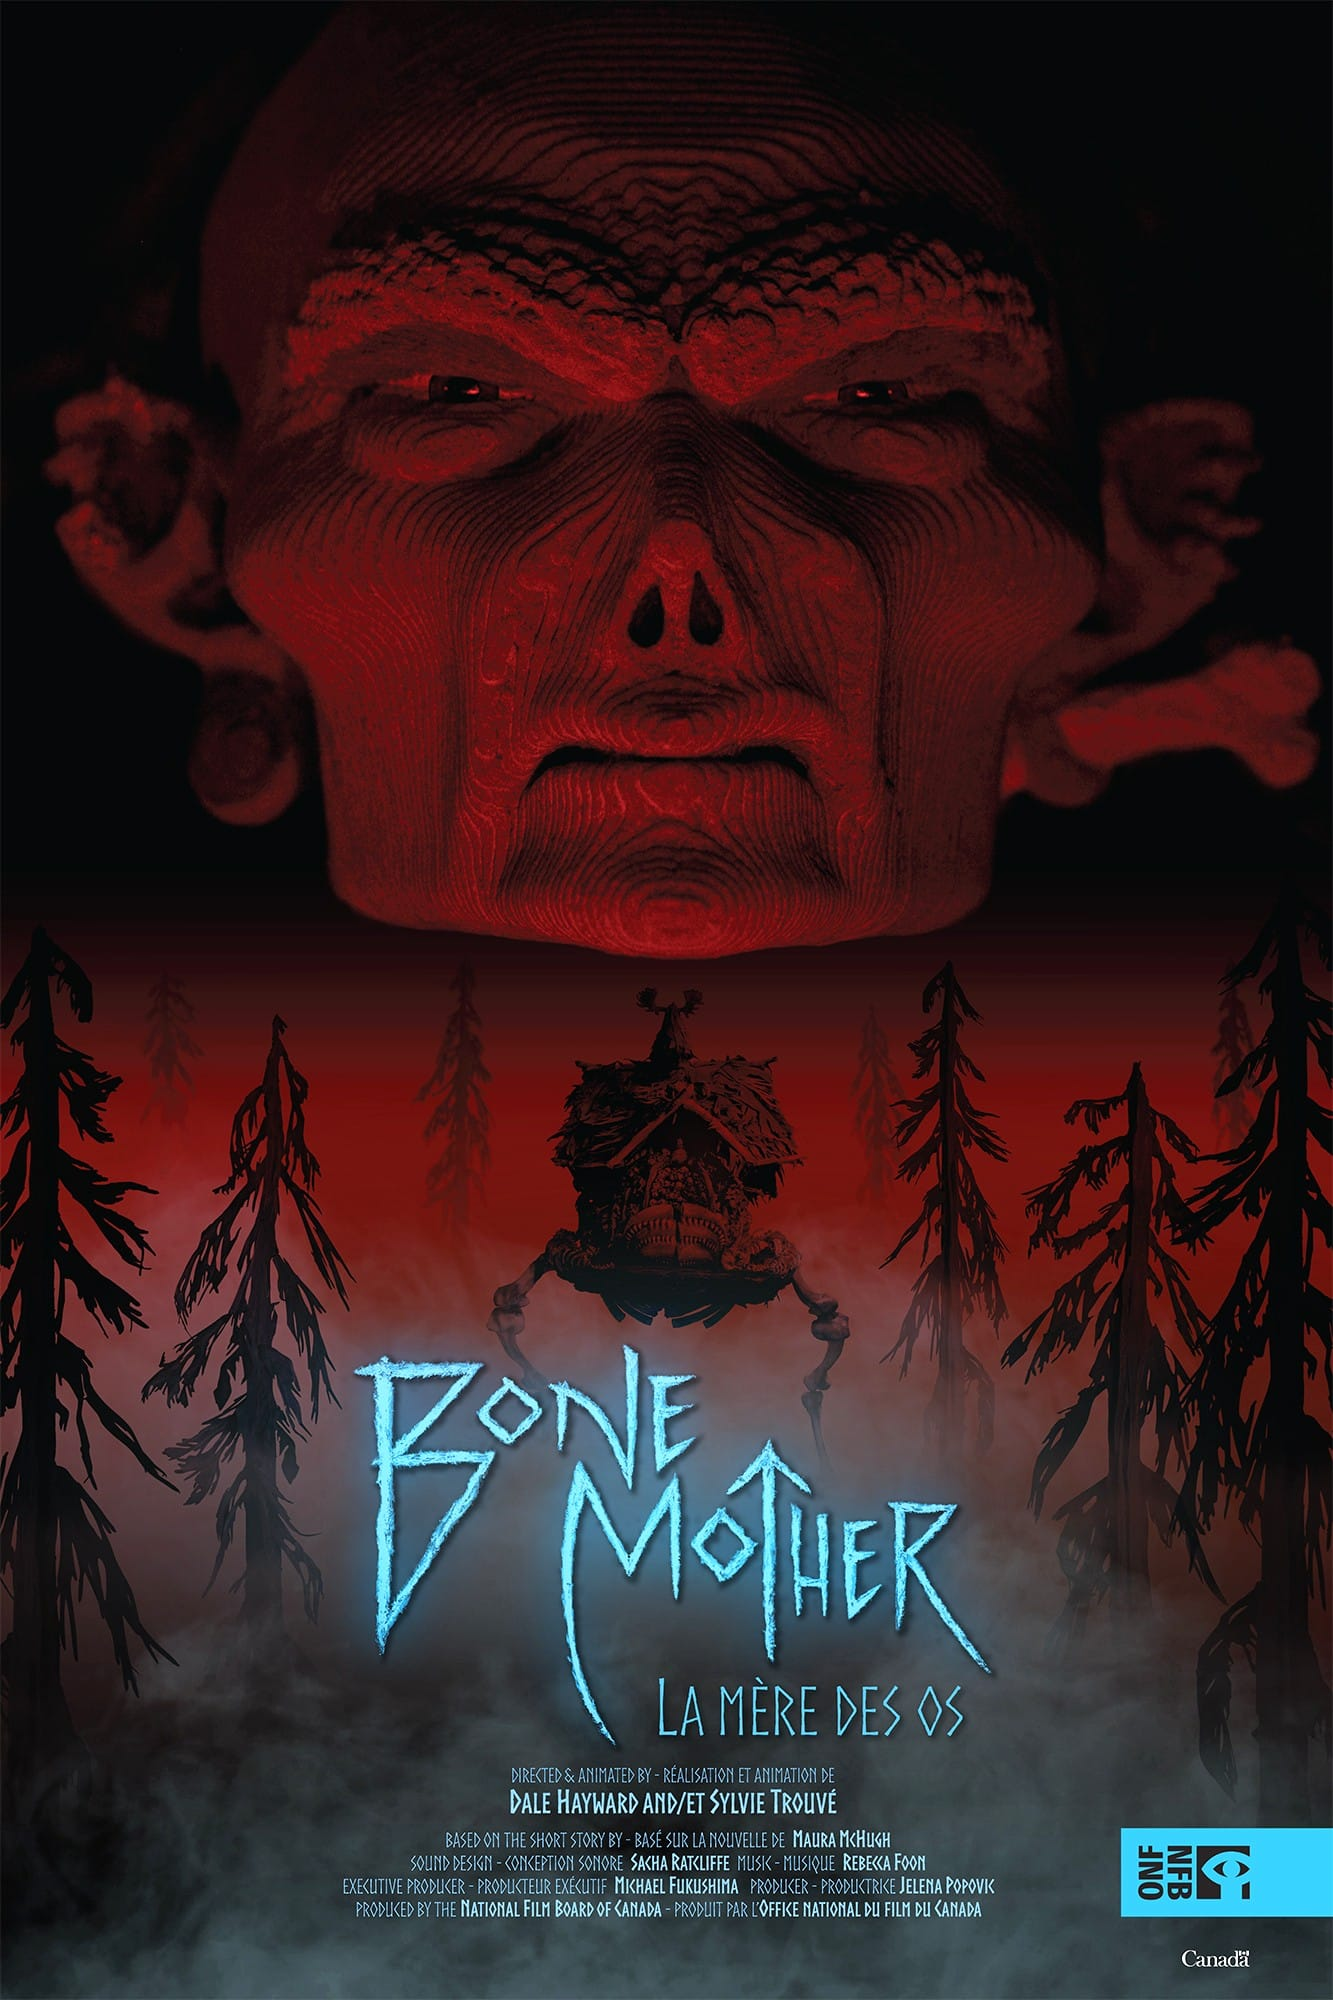 BONE MOTHER - 2018   8m   Action/Fantasy Animated ShortBone Mother is a fantasy-horror-stop-motion animation adaptation of the novel of the same name by Maura Mchugh. The ancient crone Baba Yaga is desperately caring for her ailing living house of bones and unexpectedly becomes the mother of a legend.Directed by Dale Hayward and Sylvie Trouvé.Produced by Jelena Popovic, The National Film Board of Canada.